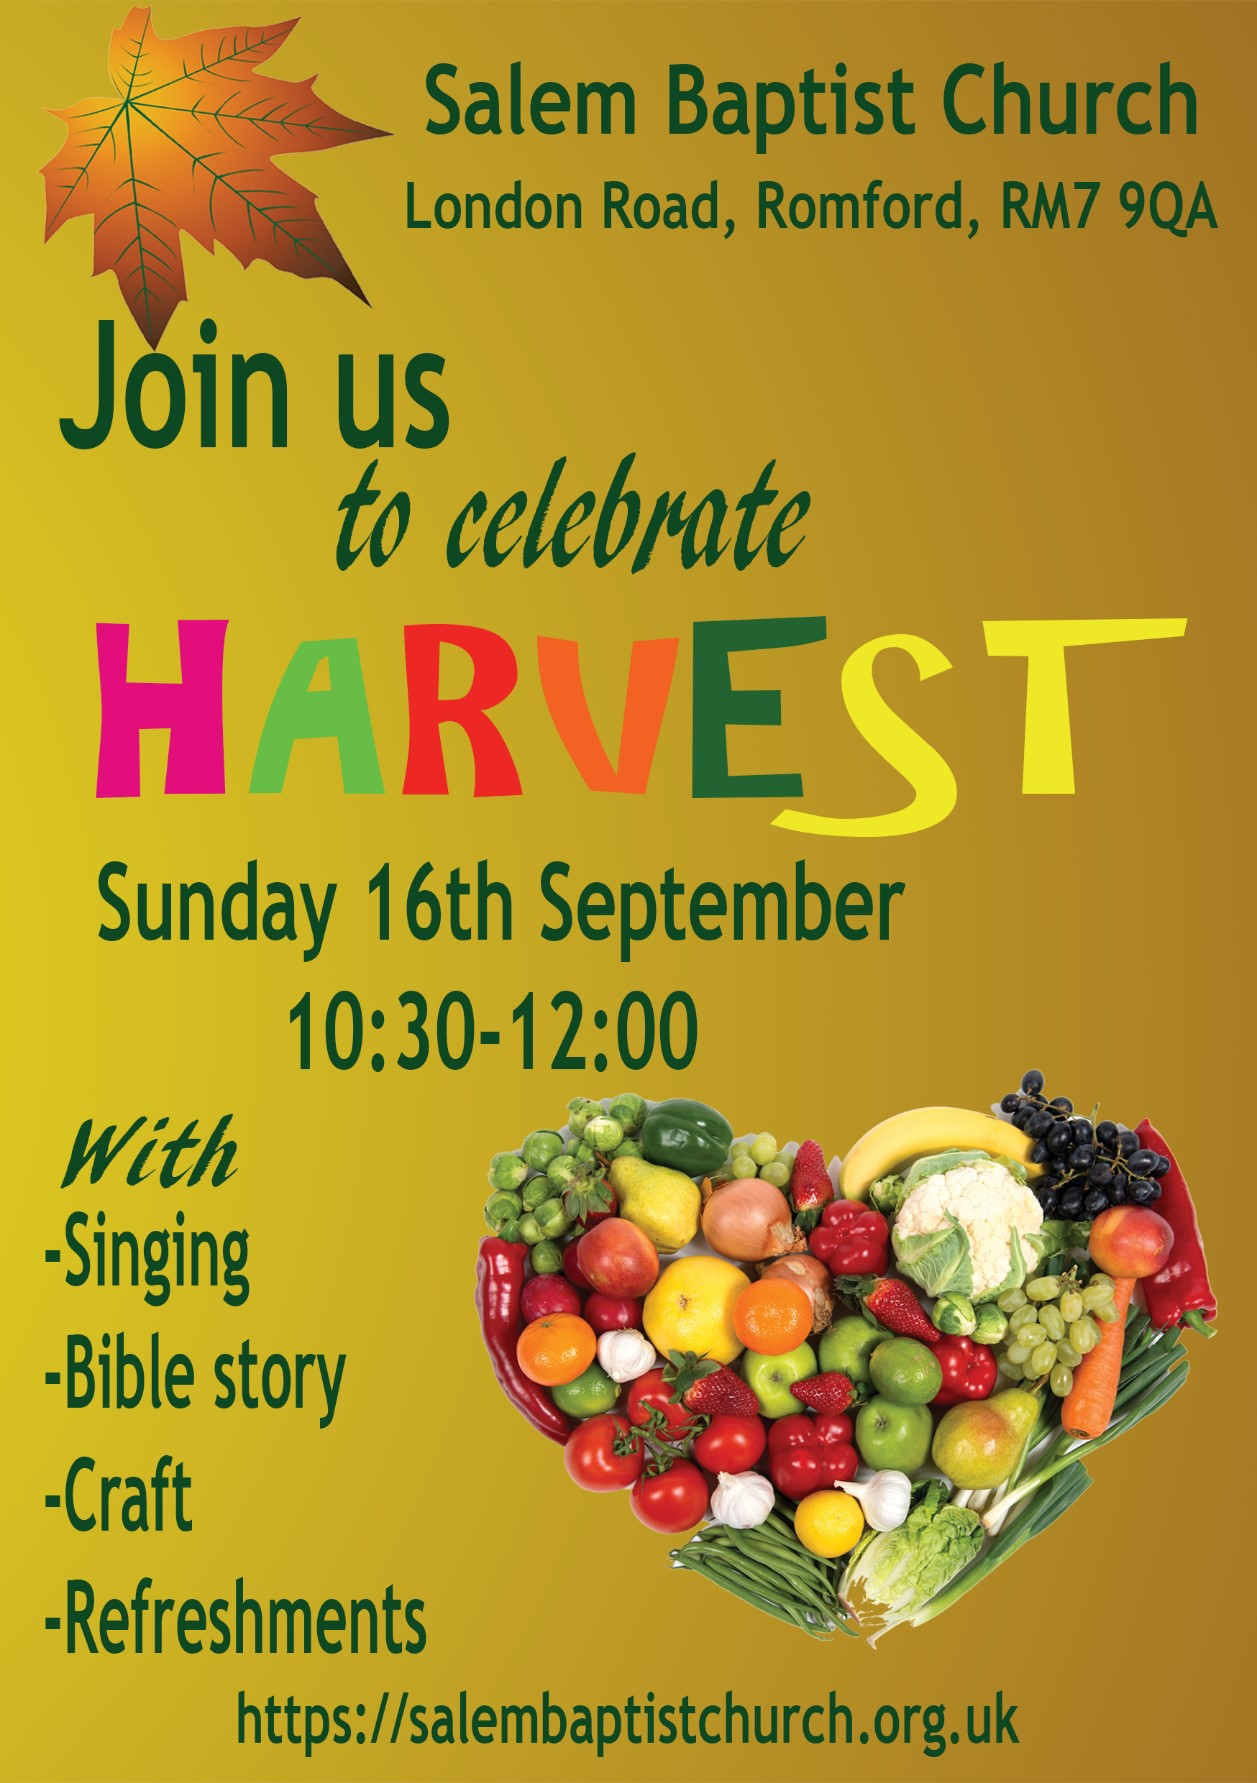 Harvest in Romford